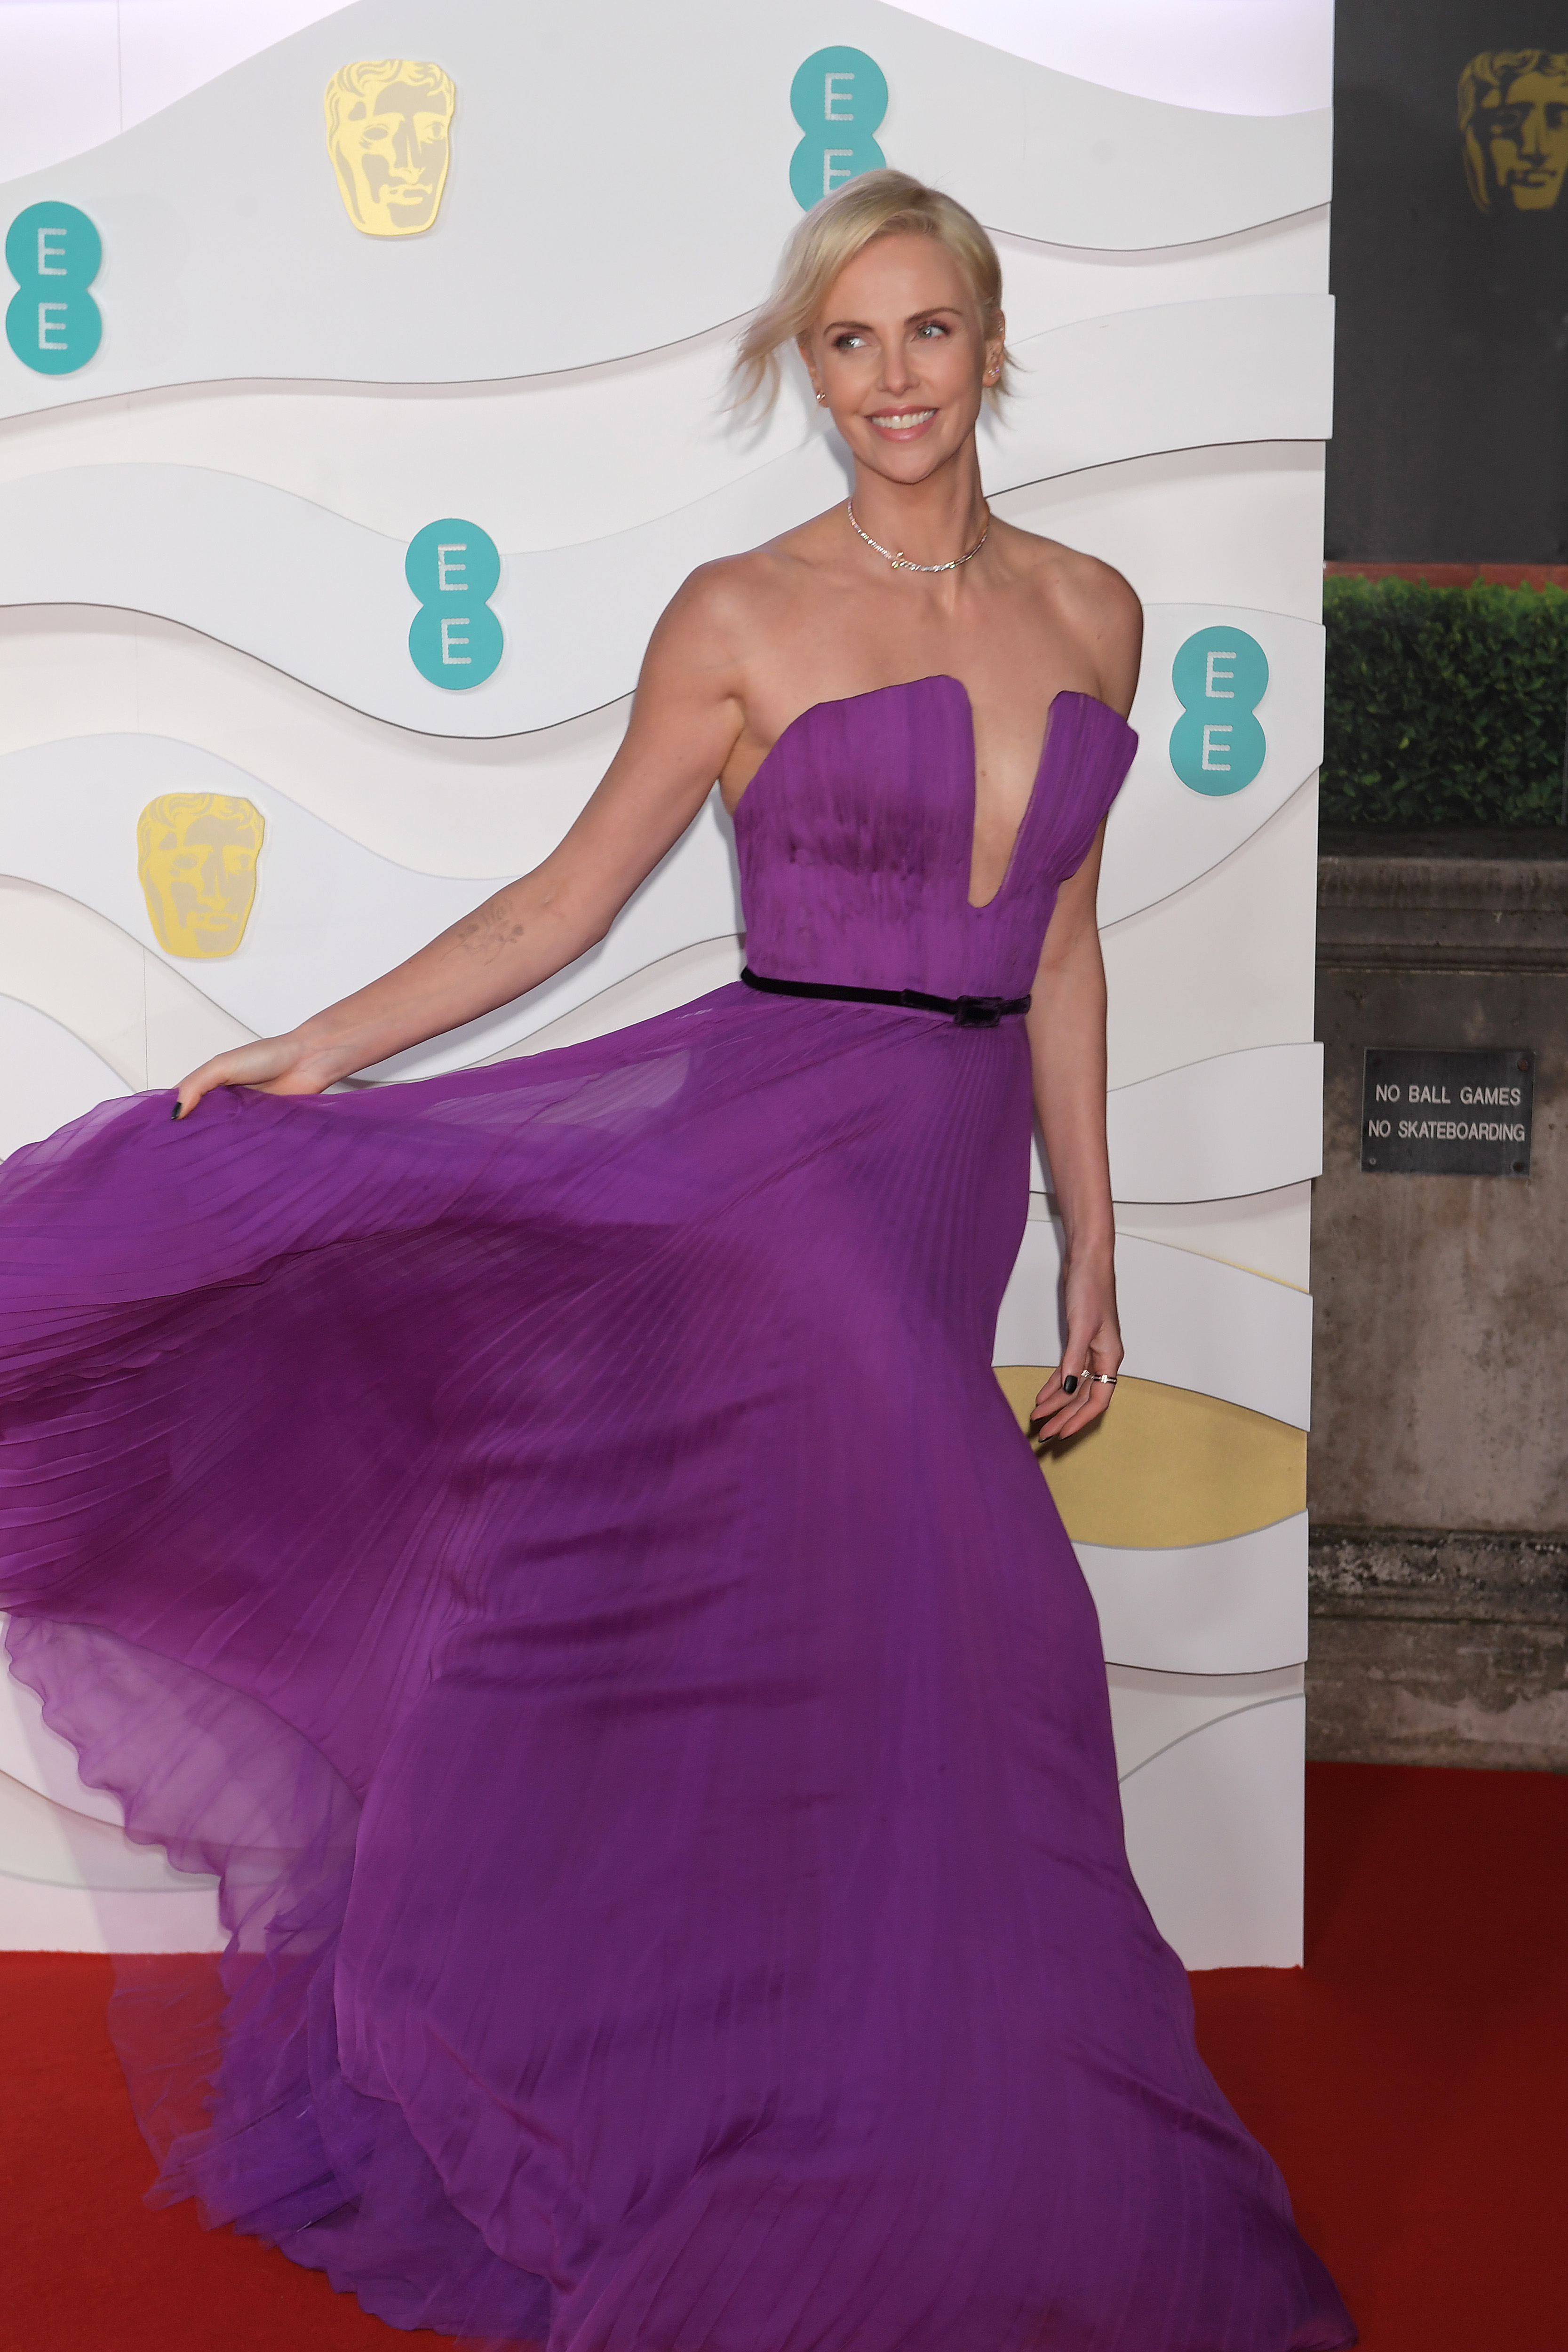 Charlize Theron at an event for EE British Academy Film Awards (2020)